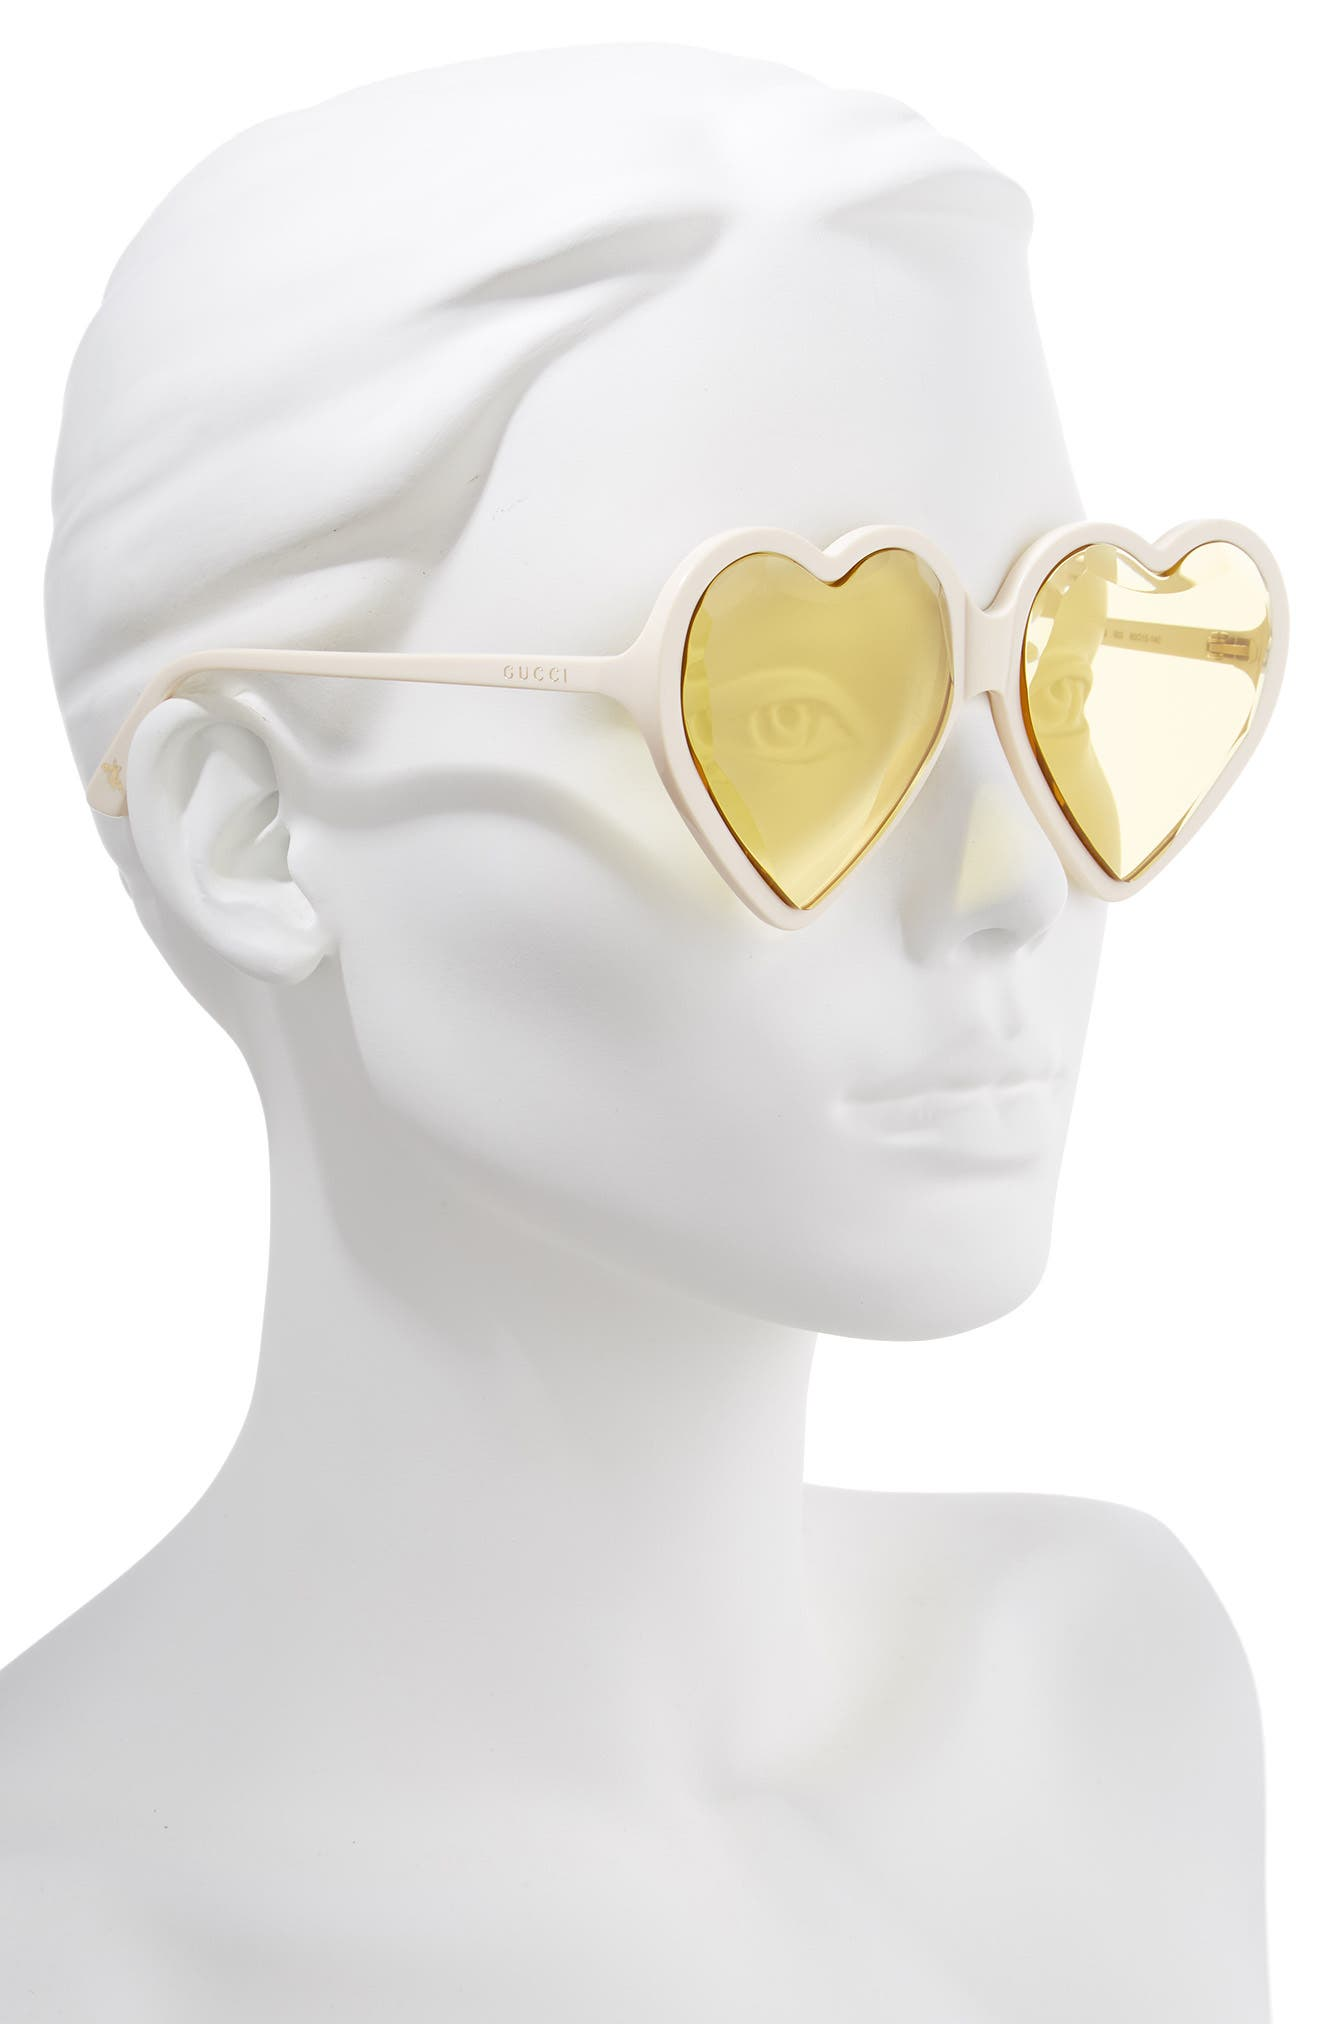 GUCCI,                             60mm Heart Sunglasses,                             Alternate thumbnail 2, color,                             IVORY/ YELLOW